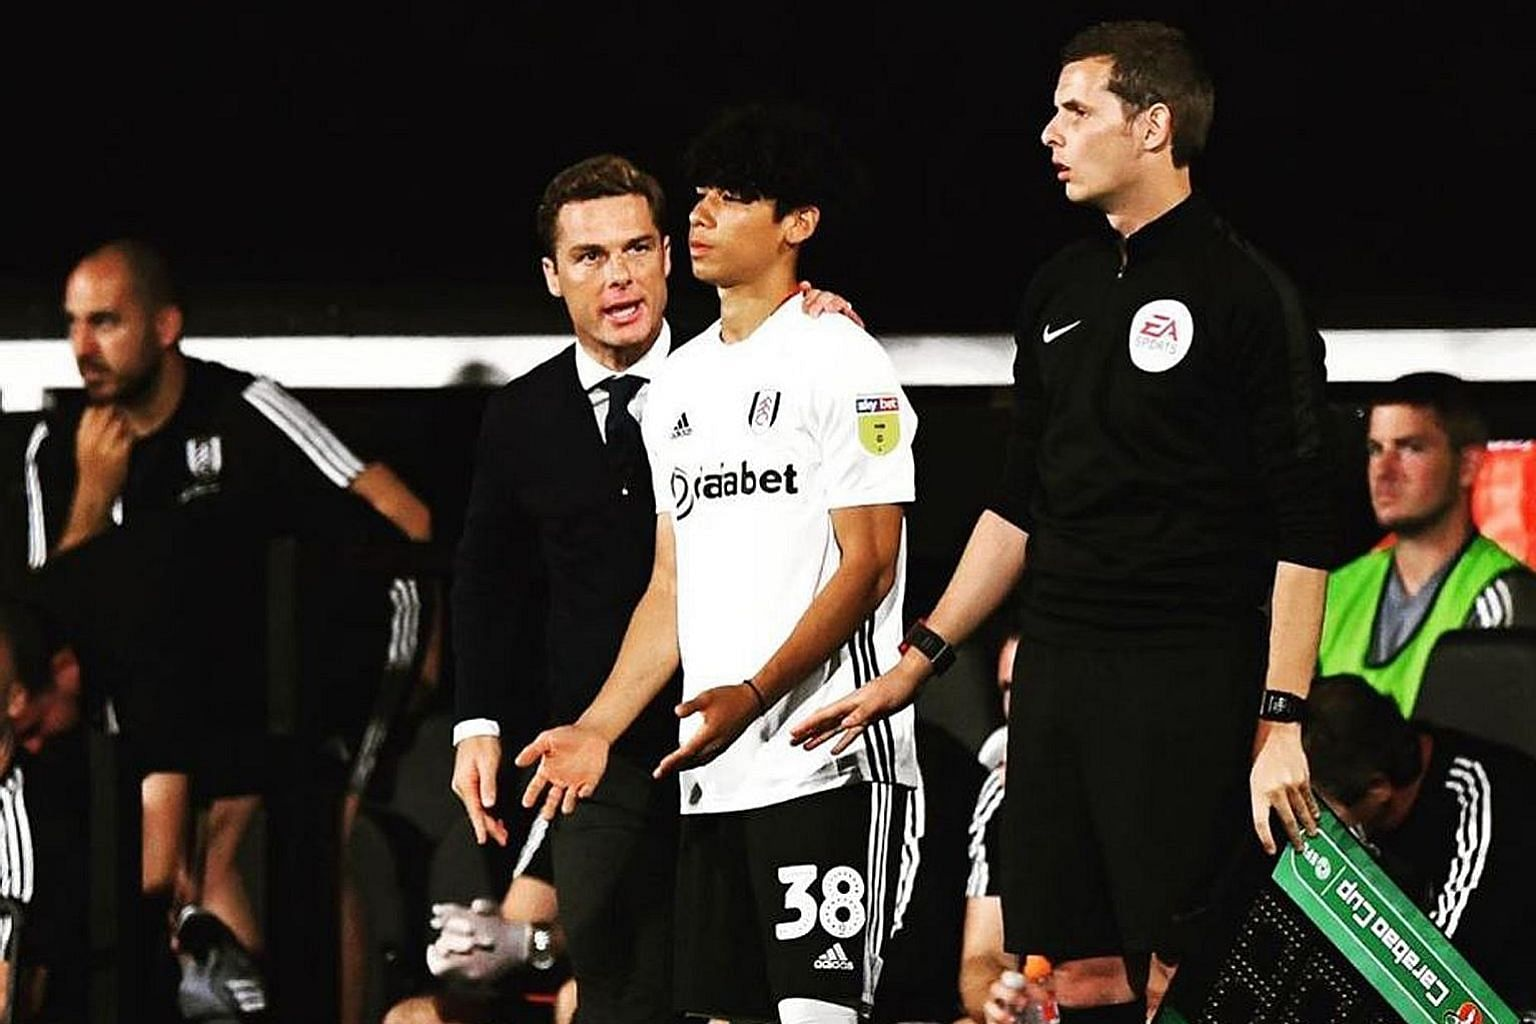 Ben Davis, 18, receiving instructions from manager Scott Parker before coming on against Southampton in the League Cup. It was the teenager's first senior appearance for Championship side Fulham. PHOTO: INSTAGRAM/ BEN_JAMES_DAVIS